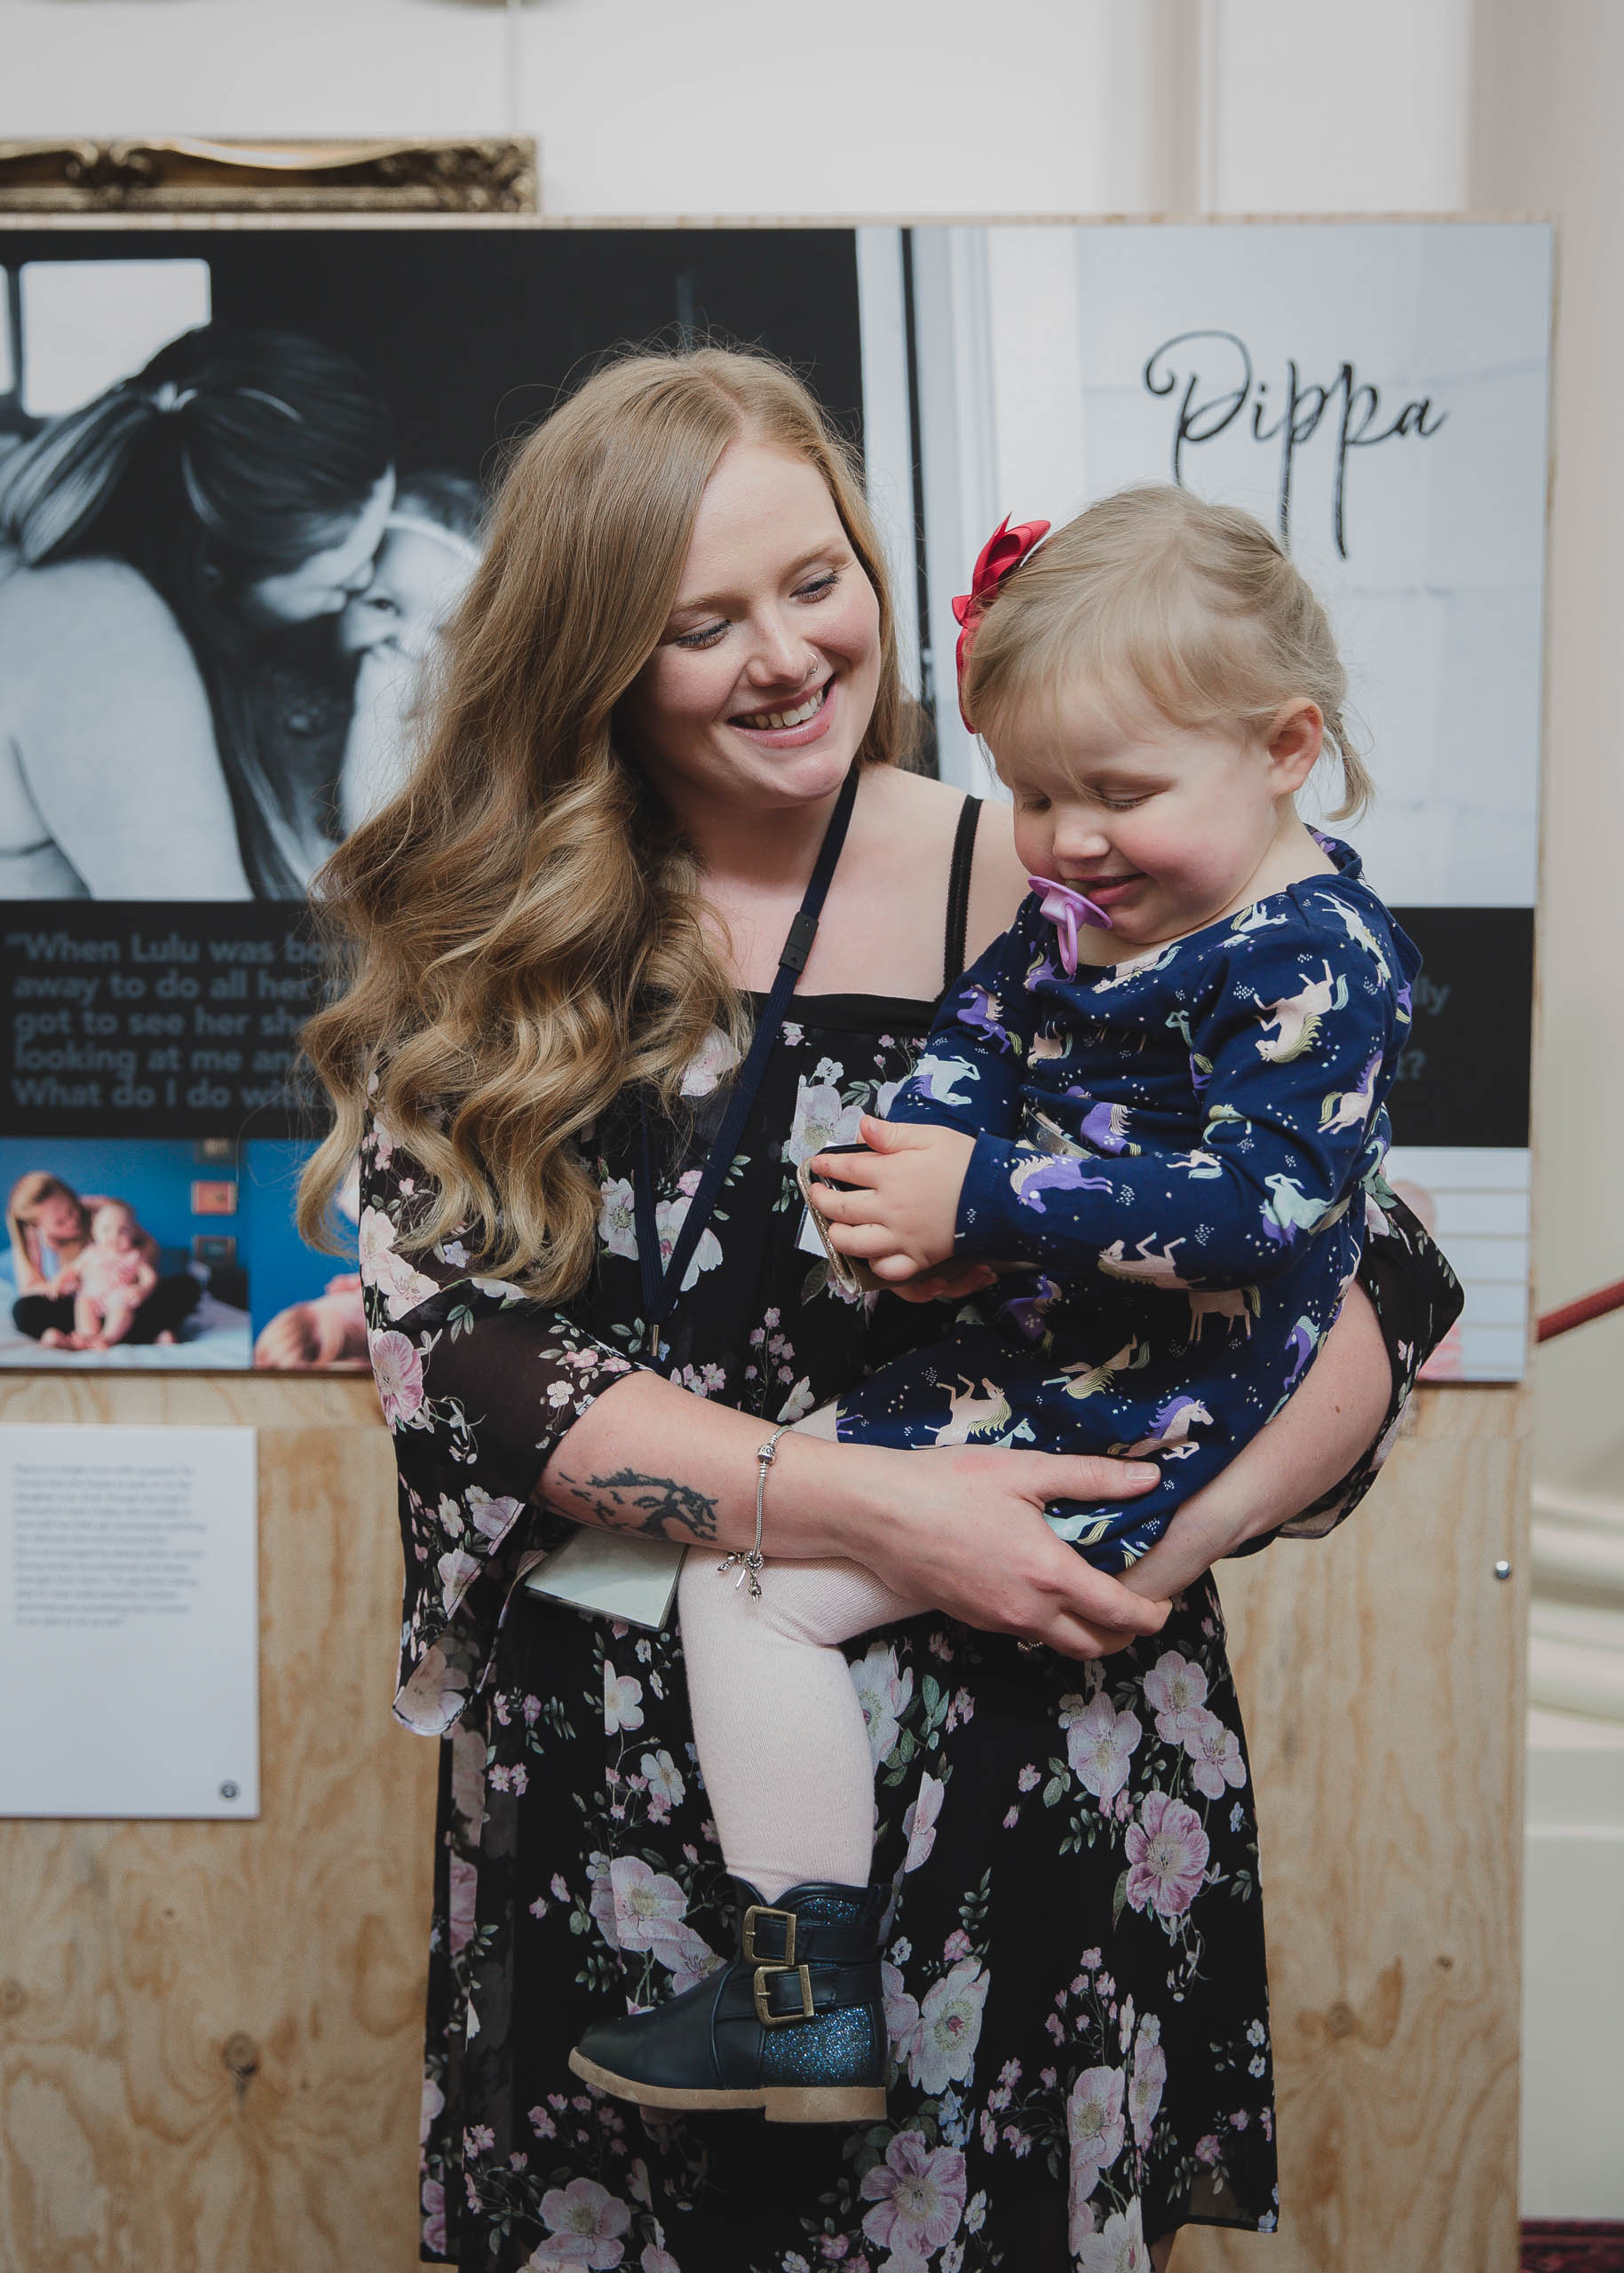 Rewriting_Motherhood_mum_Pippa_with_baby_Lulu_in_front_of_their_pictures_in_the_exhibition_2.jpg